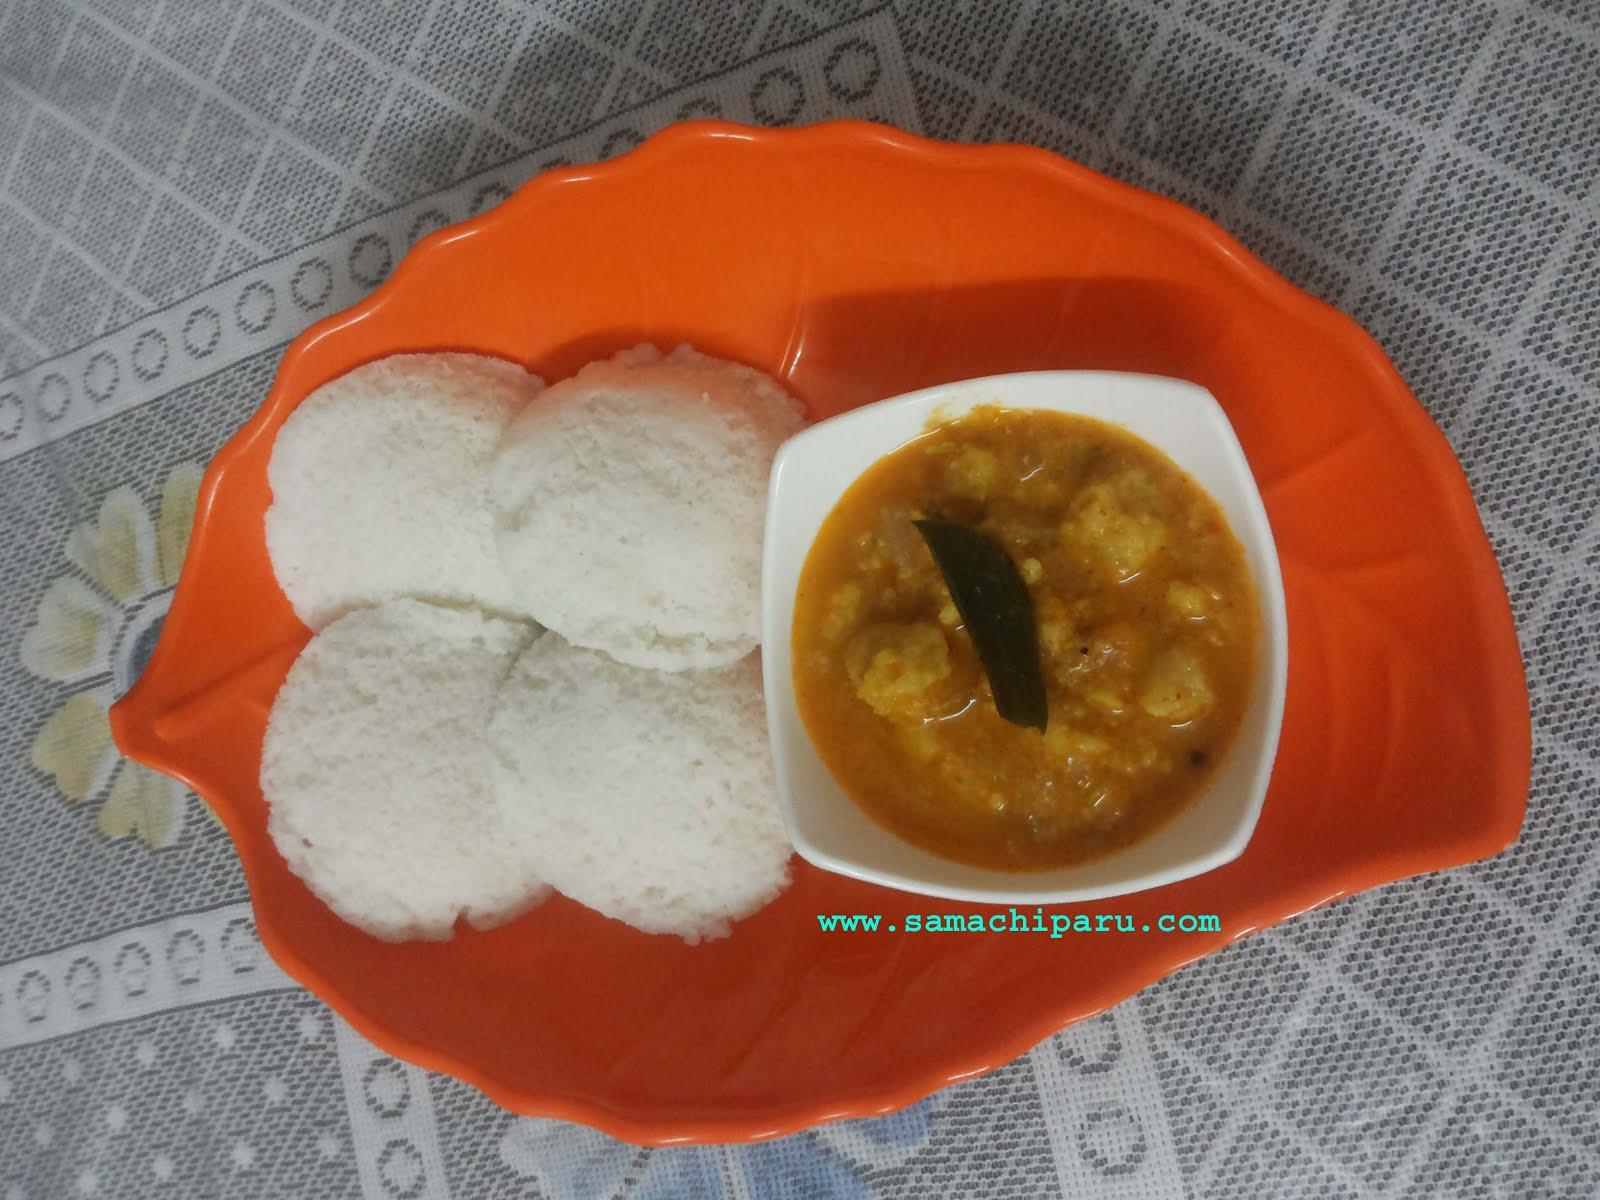 SIDE DISH FOR IDLY AND DOSA